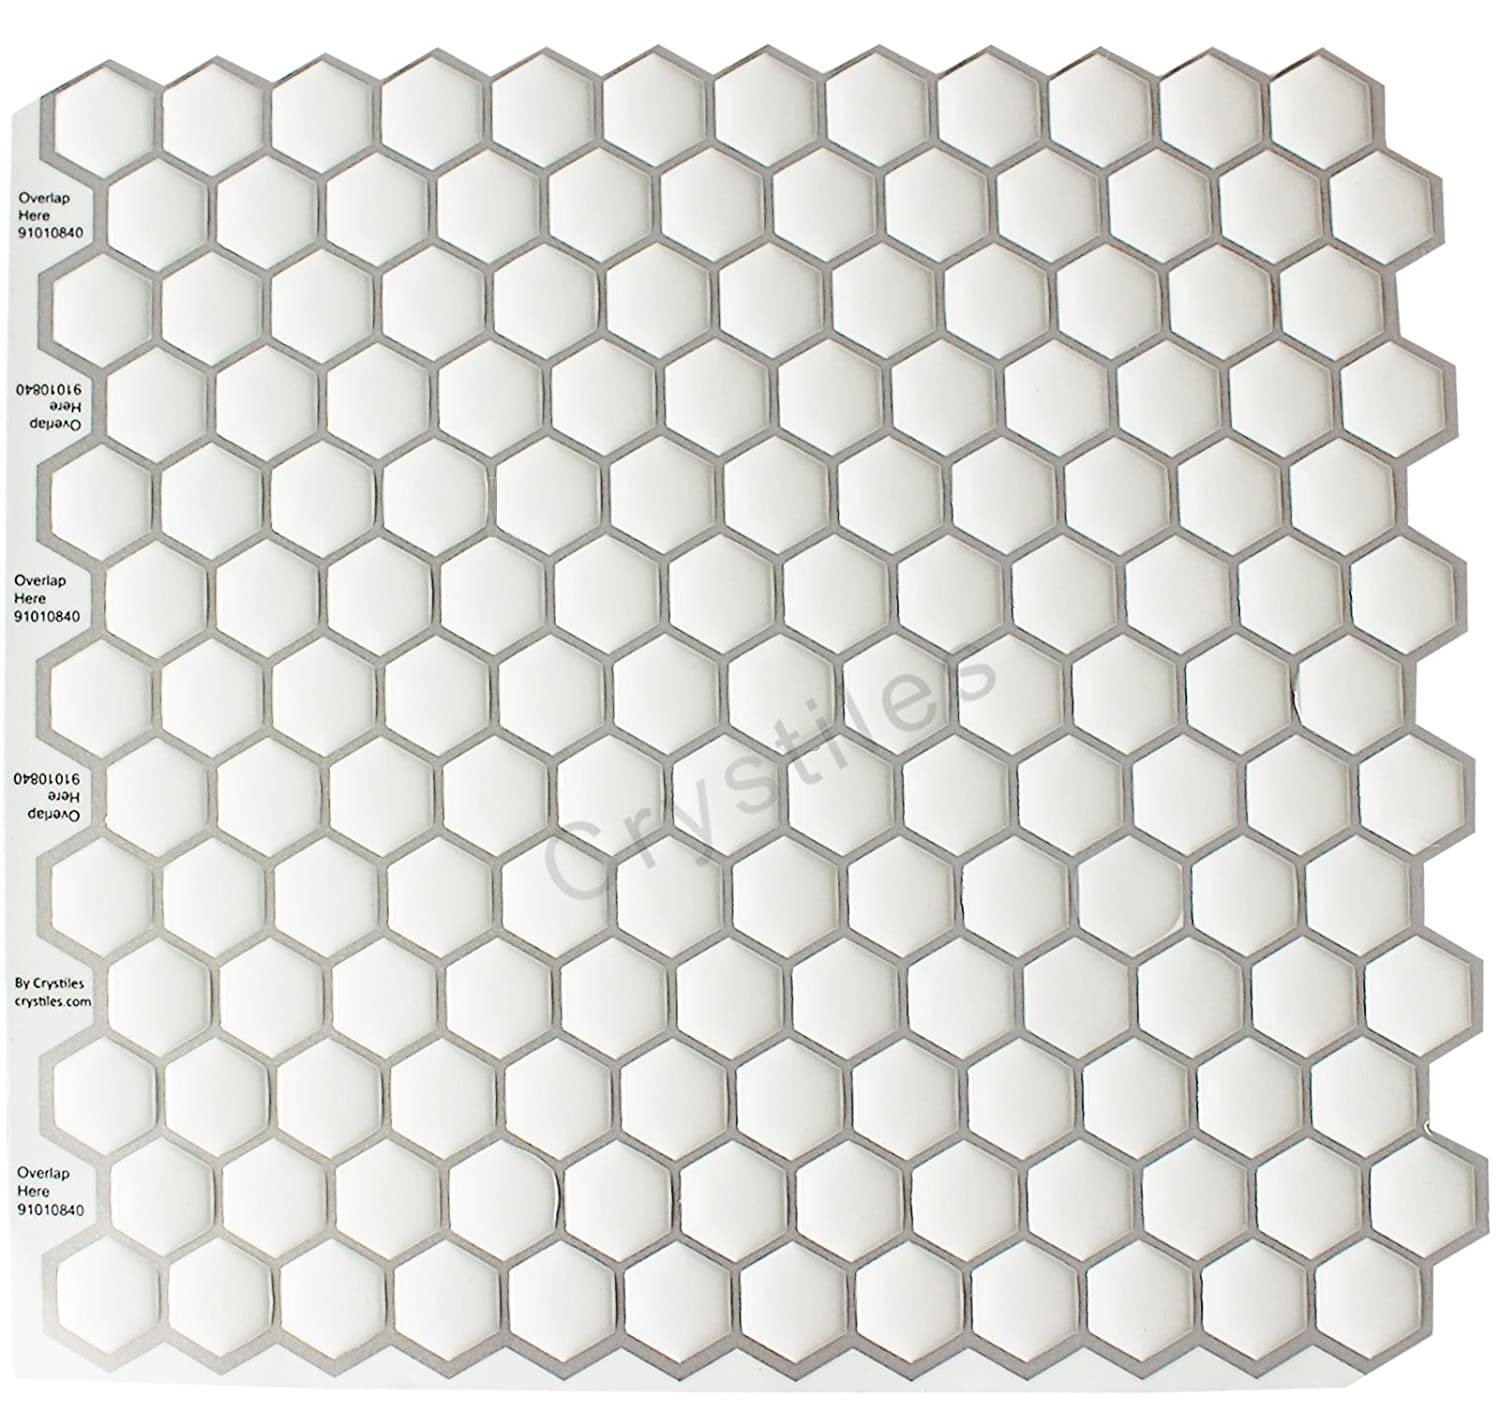 Crystiles Peel and Stick Self-Adhesive Vinyl Wall Tiles, Hexagon White, Item# 91010840, 10 X 10, 1 Sheet Sample 10 X 10 91010840S